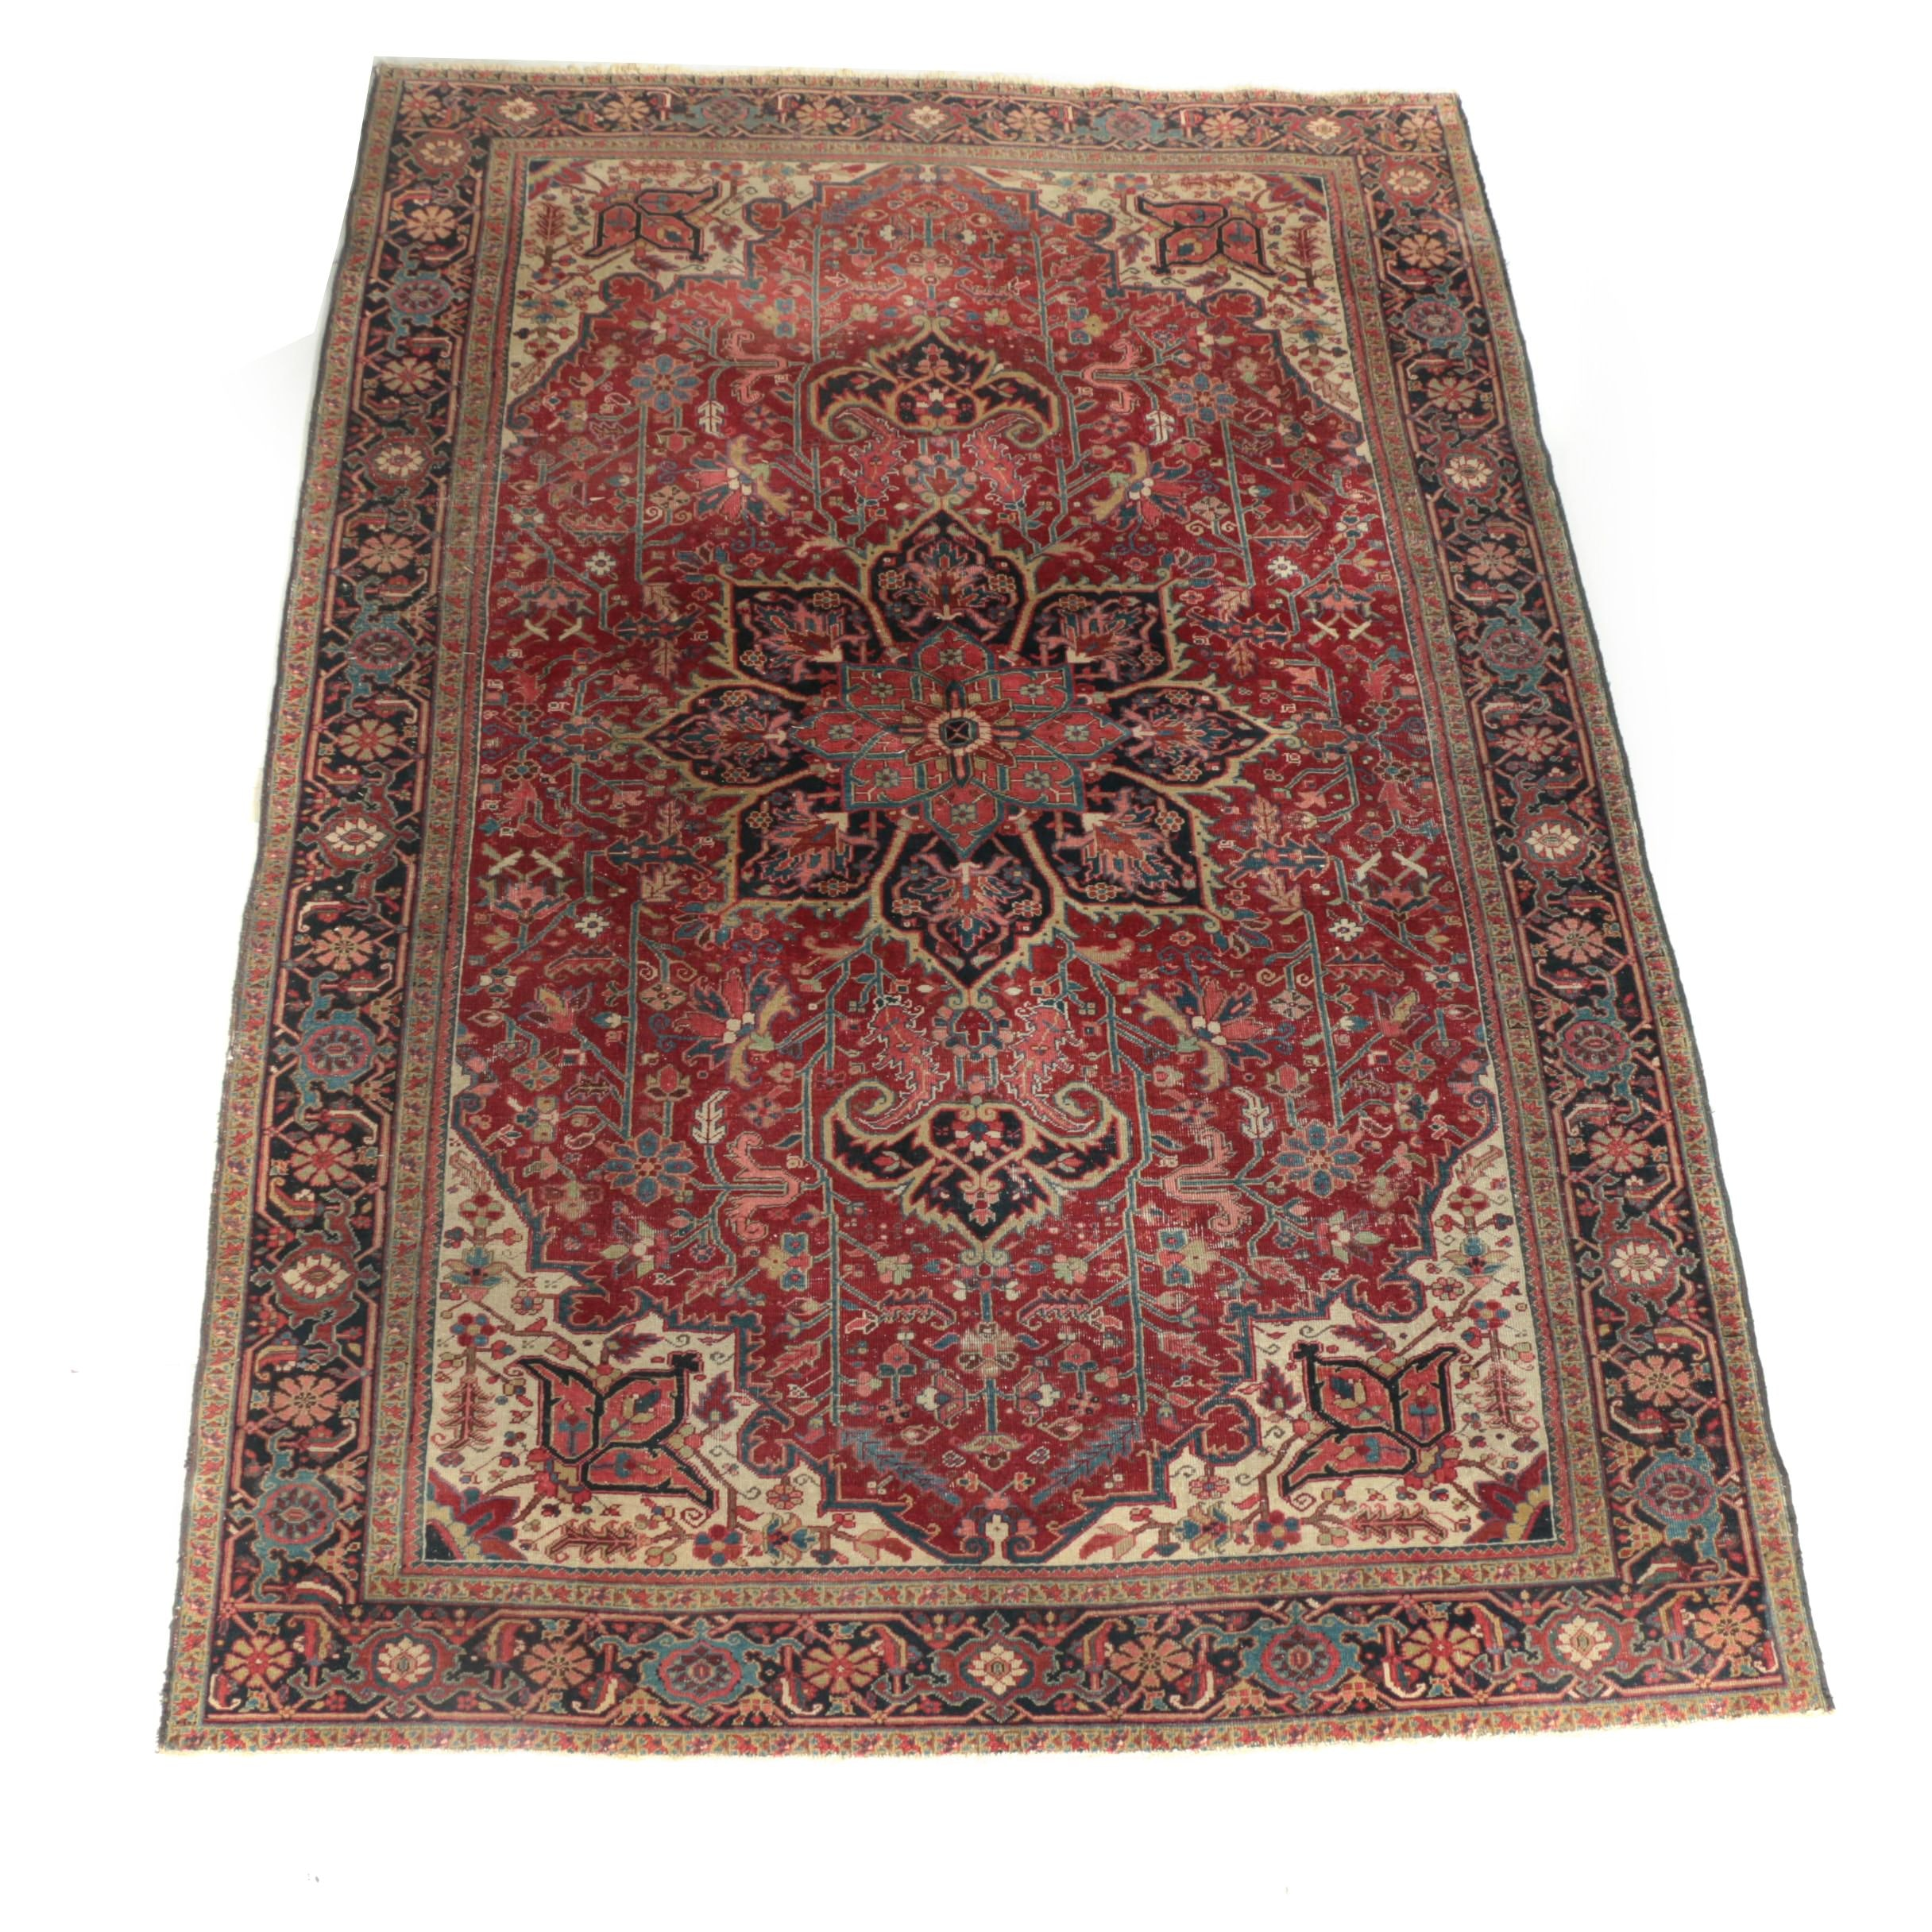 Antique Hand-Knotted Persian Heriz Wool Area Rug